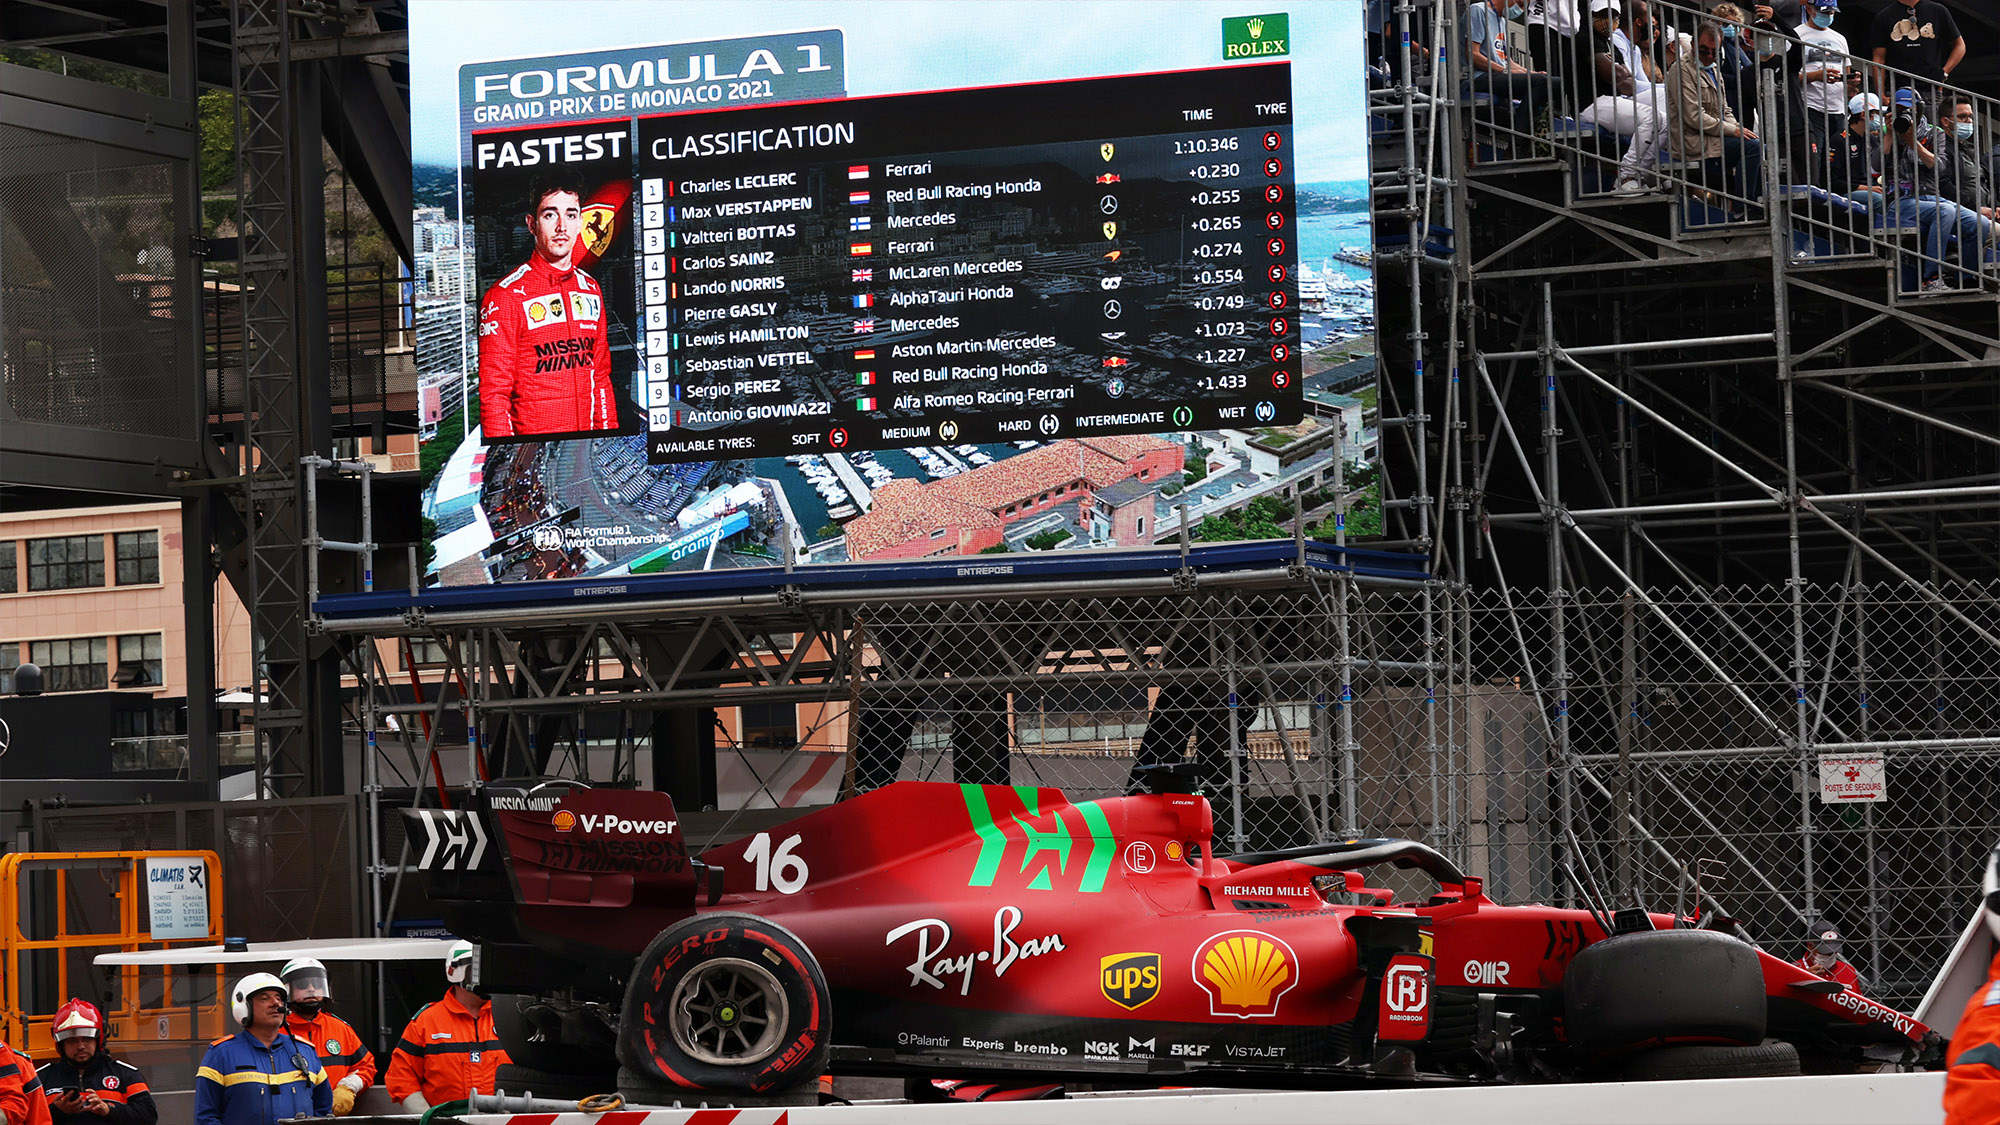 wrecked ferrari of charles leclerc after qualifying for the 2021 f1 monaco grand prix.jpg